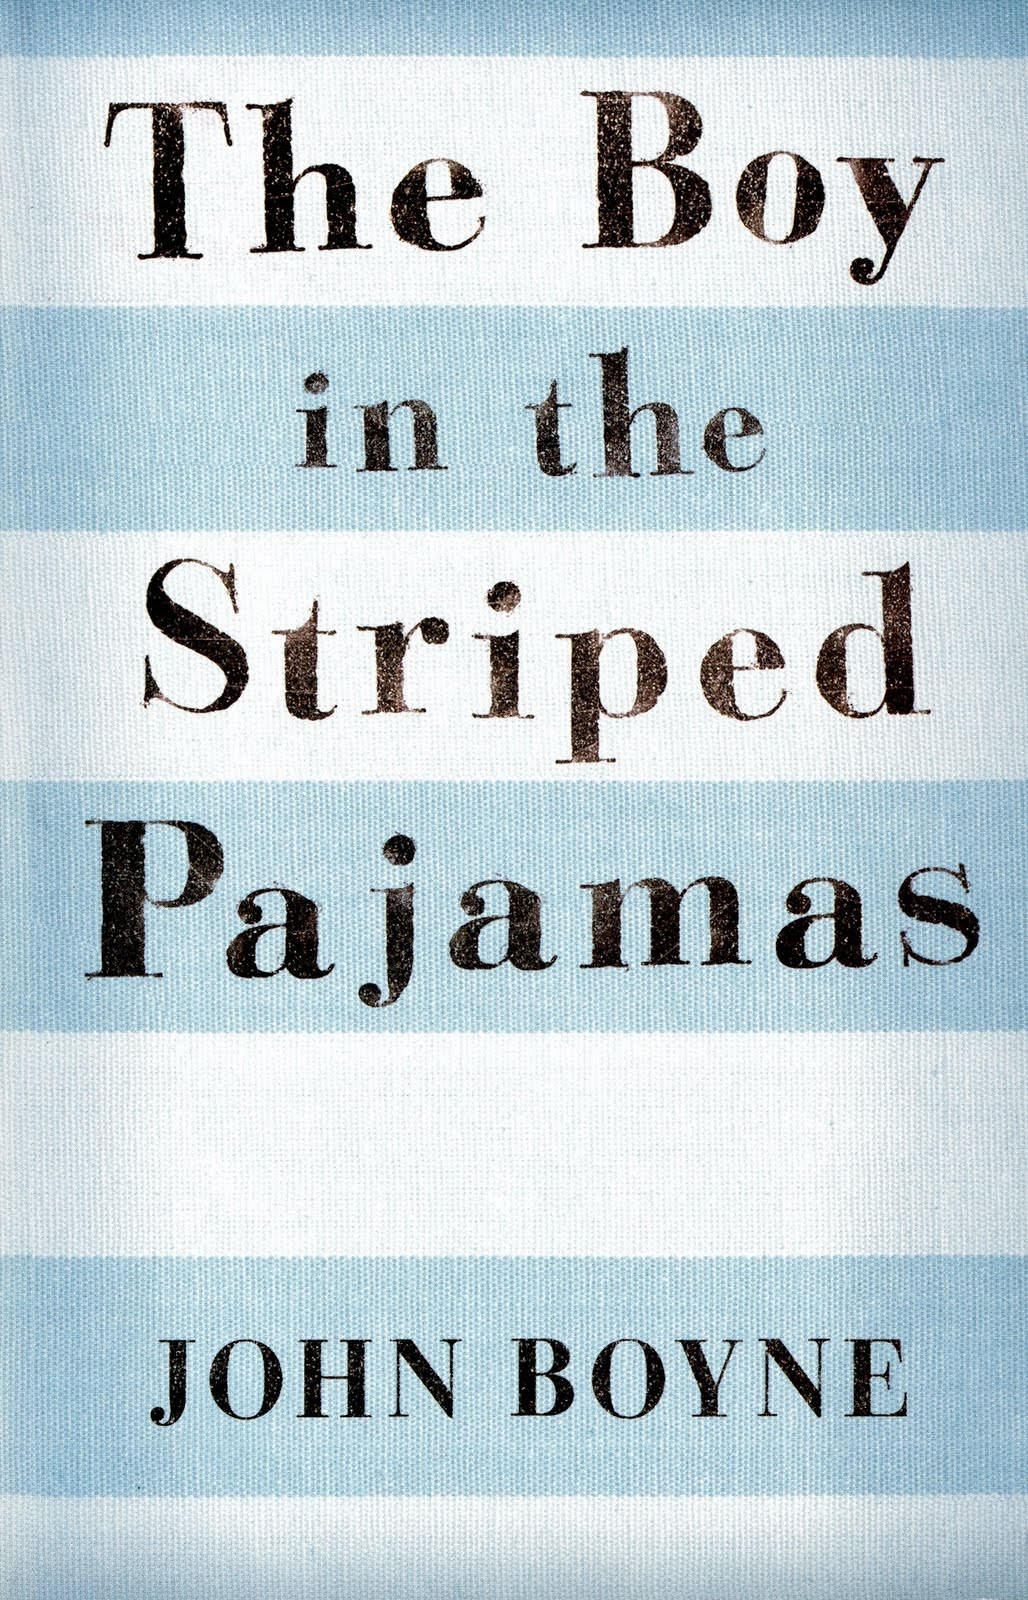 boy in striped pajamas essay questions 91 121 113 106 boy in striped pajamas essay questions